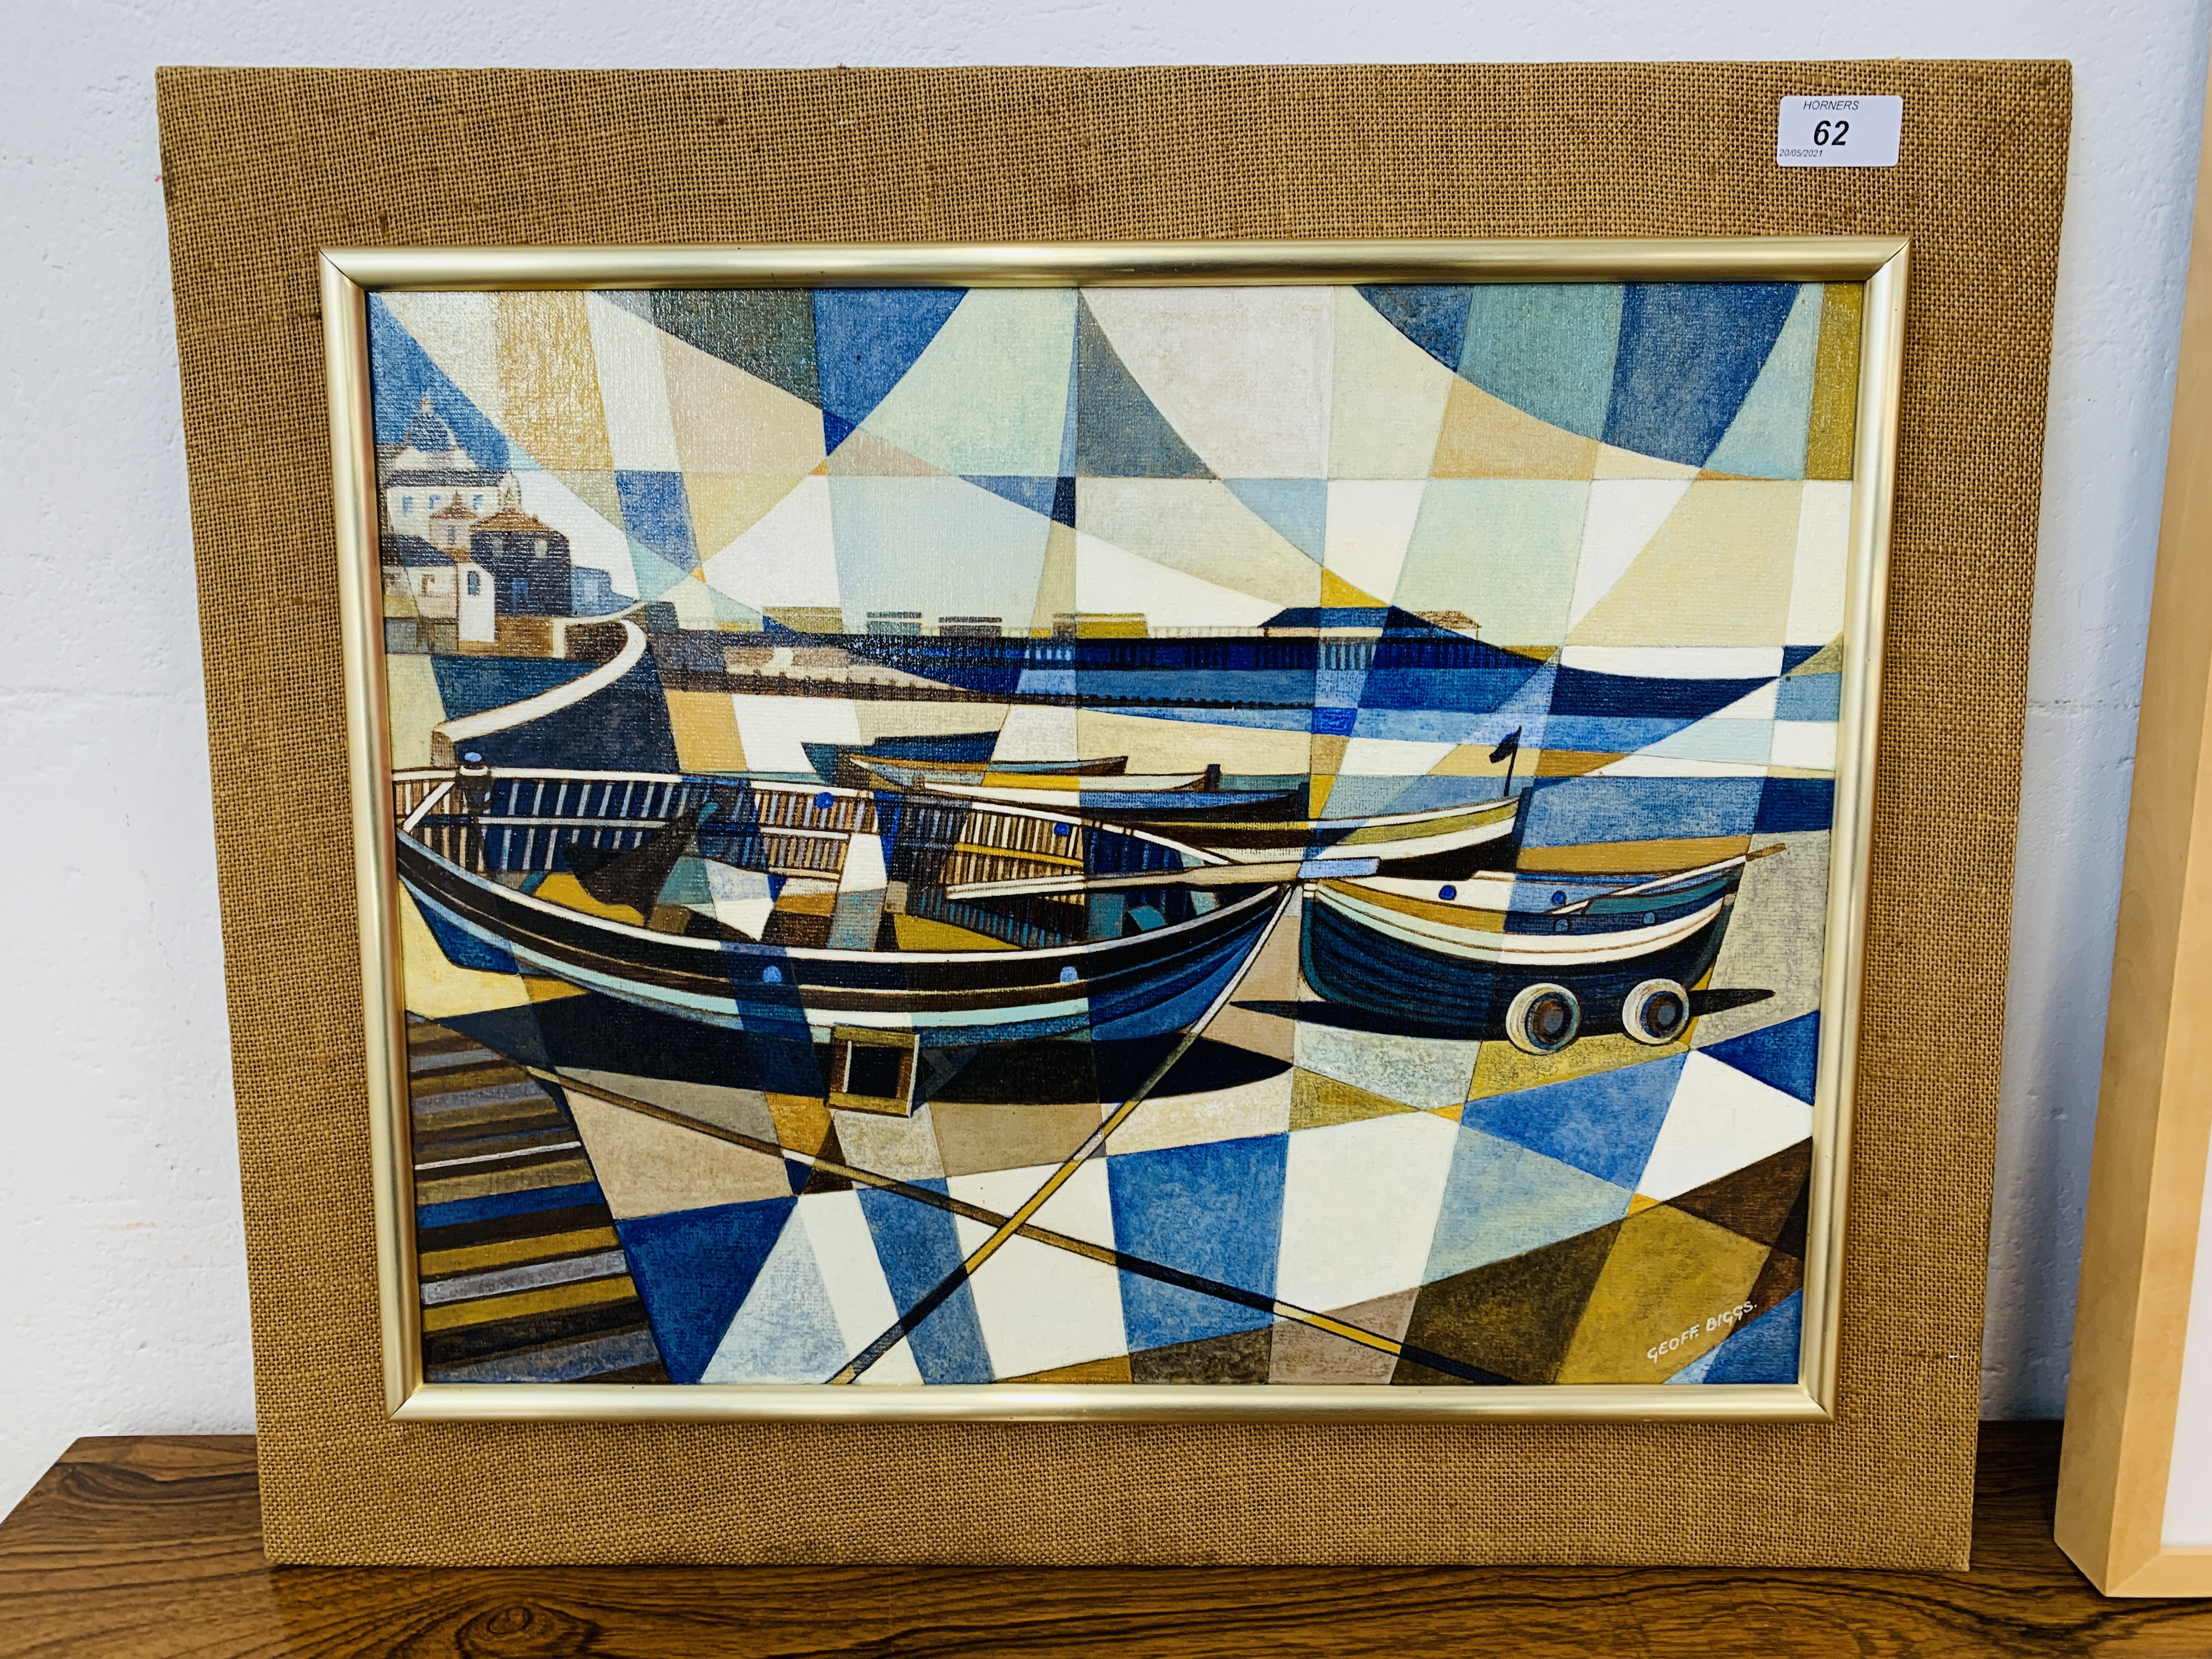 GEOFF BIGGS BEACH SCENE WITH BOATS, OIL ON BOARD 37 X 48 CM ALONG WITH J.O. - Image 4 of 5